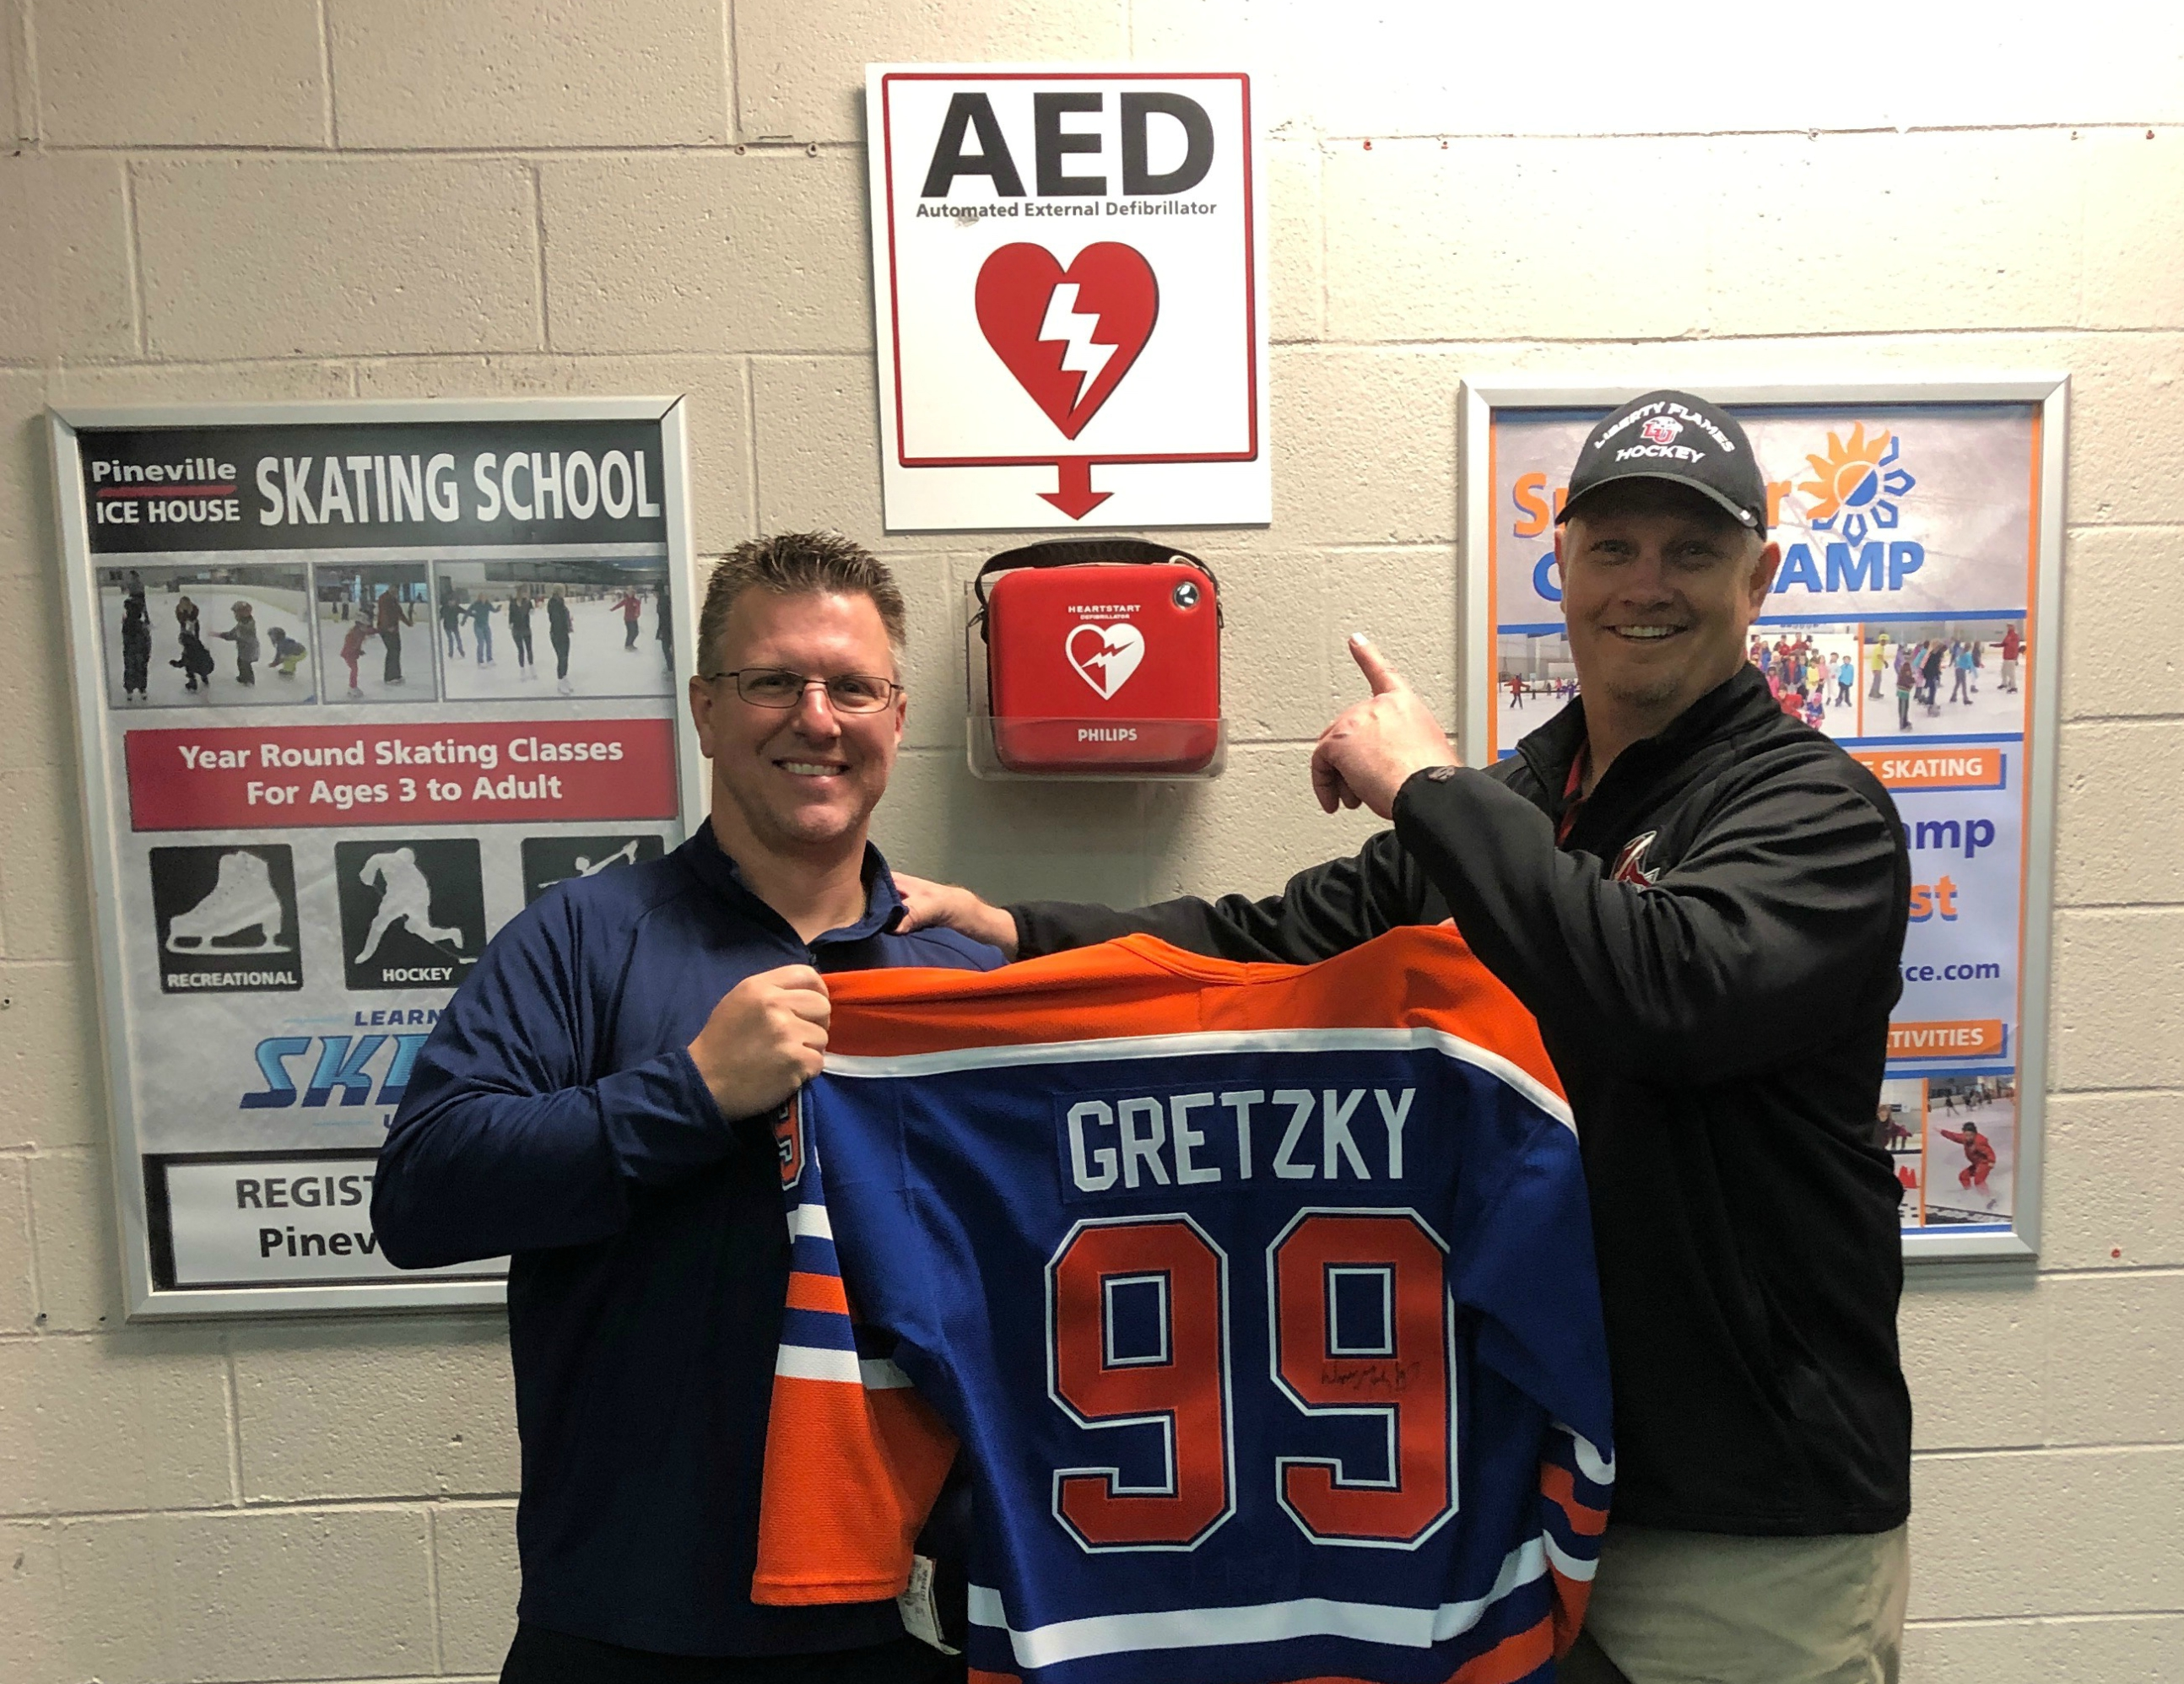 Jib Street (right) and Dr. Craig Bryant at the Pineville Ice House. The signed Wayne Gretzky jersey was Jib's thank-you gift to Craig for using the AED to save his life. (Photo courtesy of Jib Street)